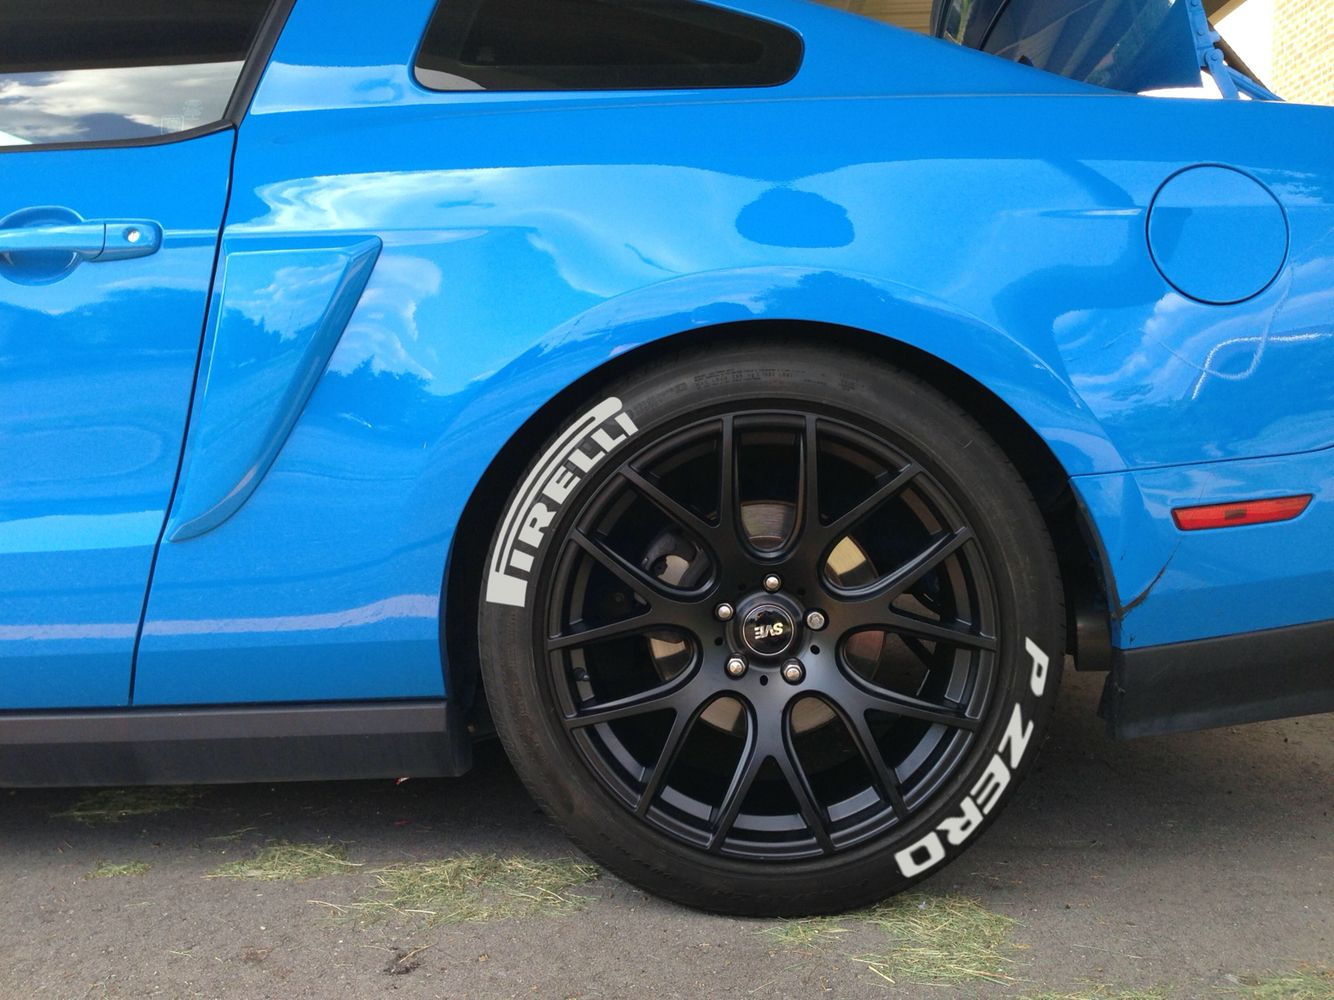 Raised White Letter Tires On A Mustang Performance Tyres